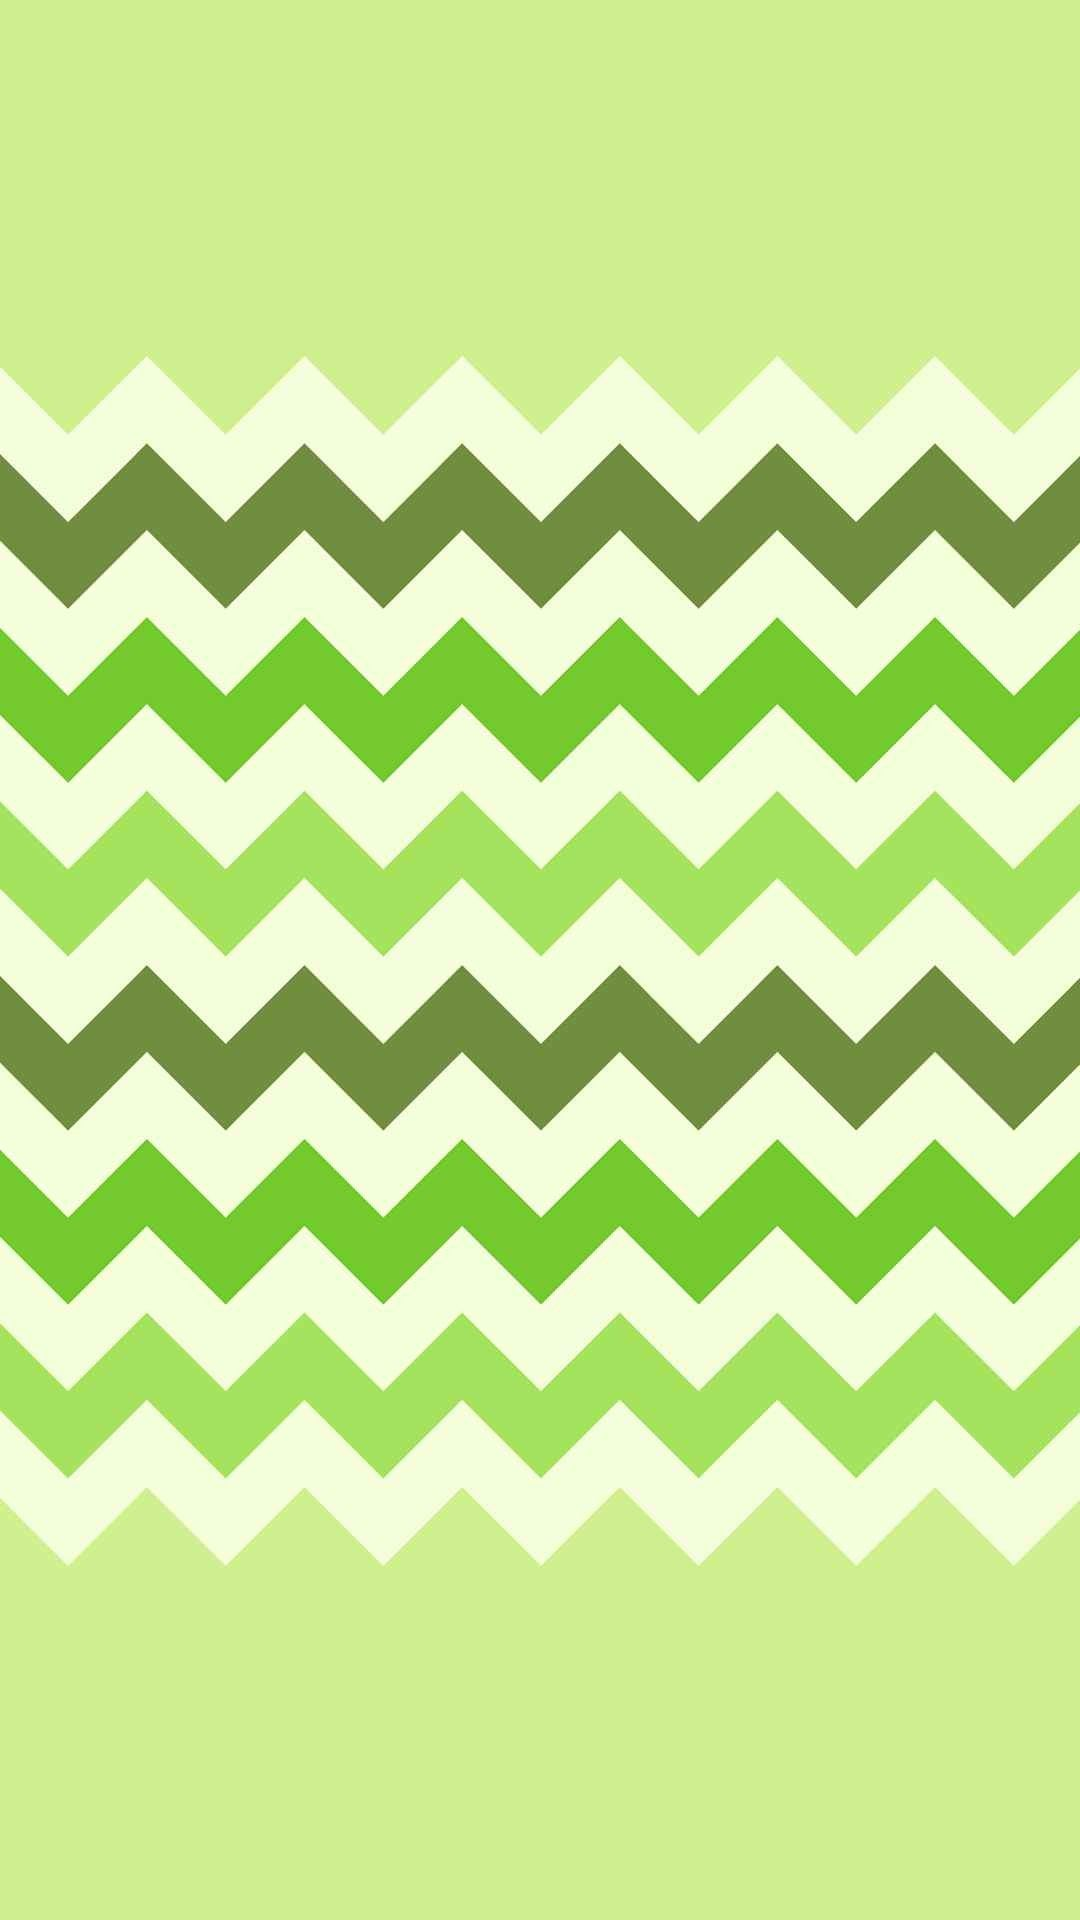 Ombre Green Chevron and Zigzag iPhone 6 Plus Wallpaper ...